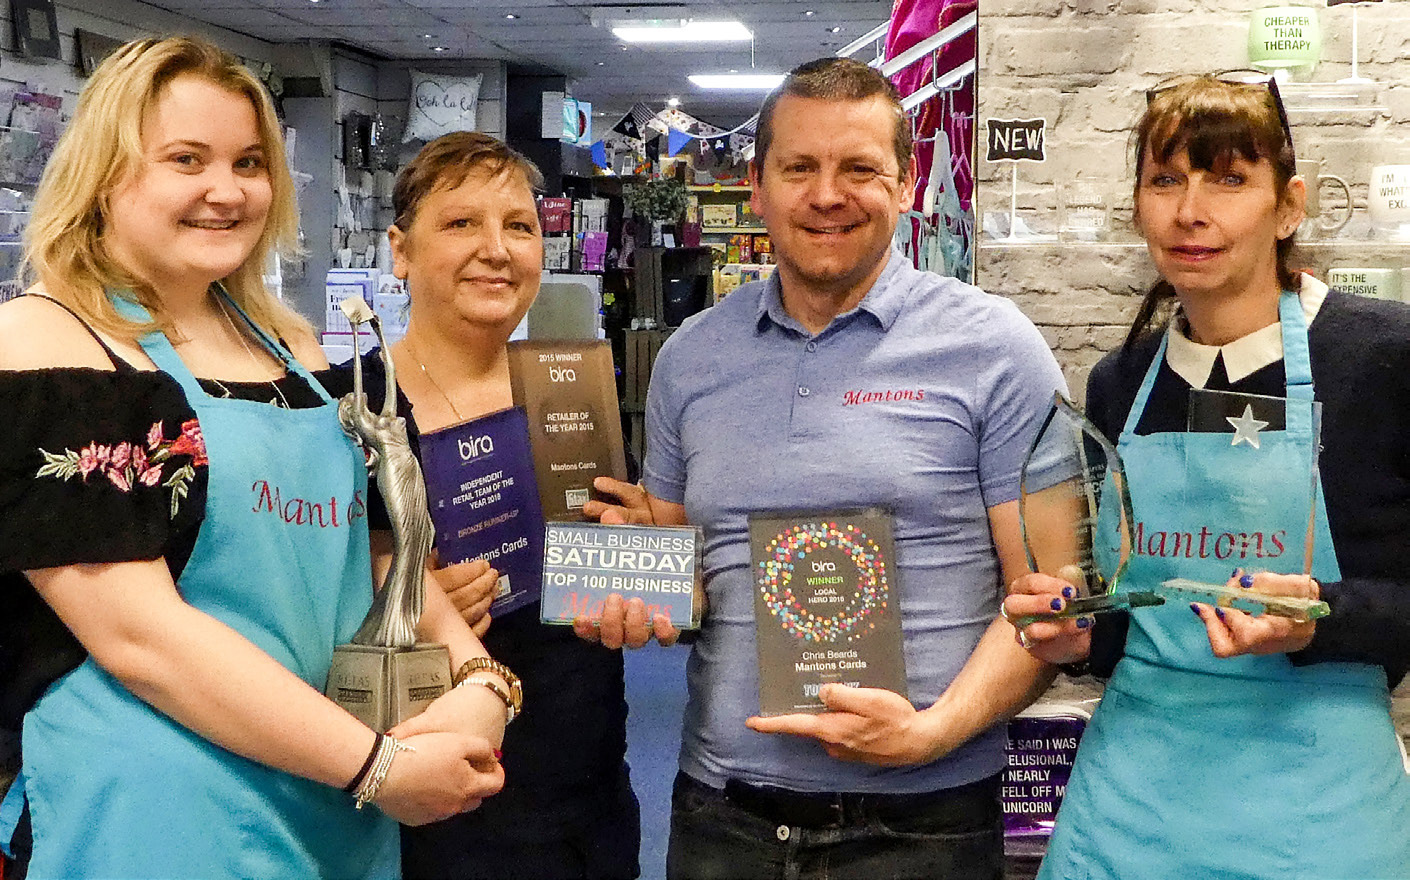 success is on the cards for Mantons Cards in Port Erin